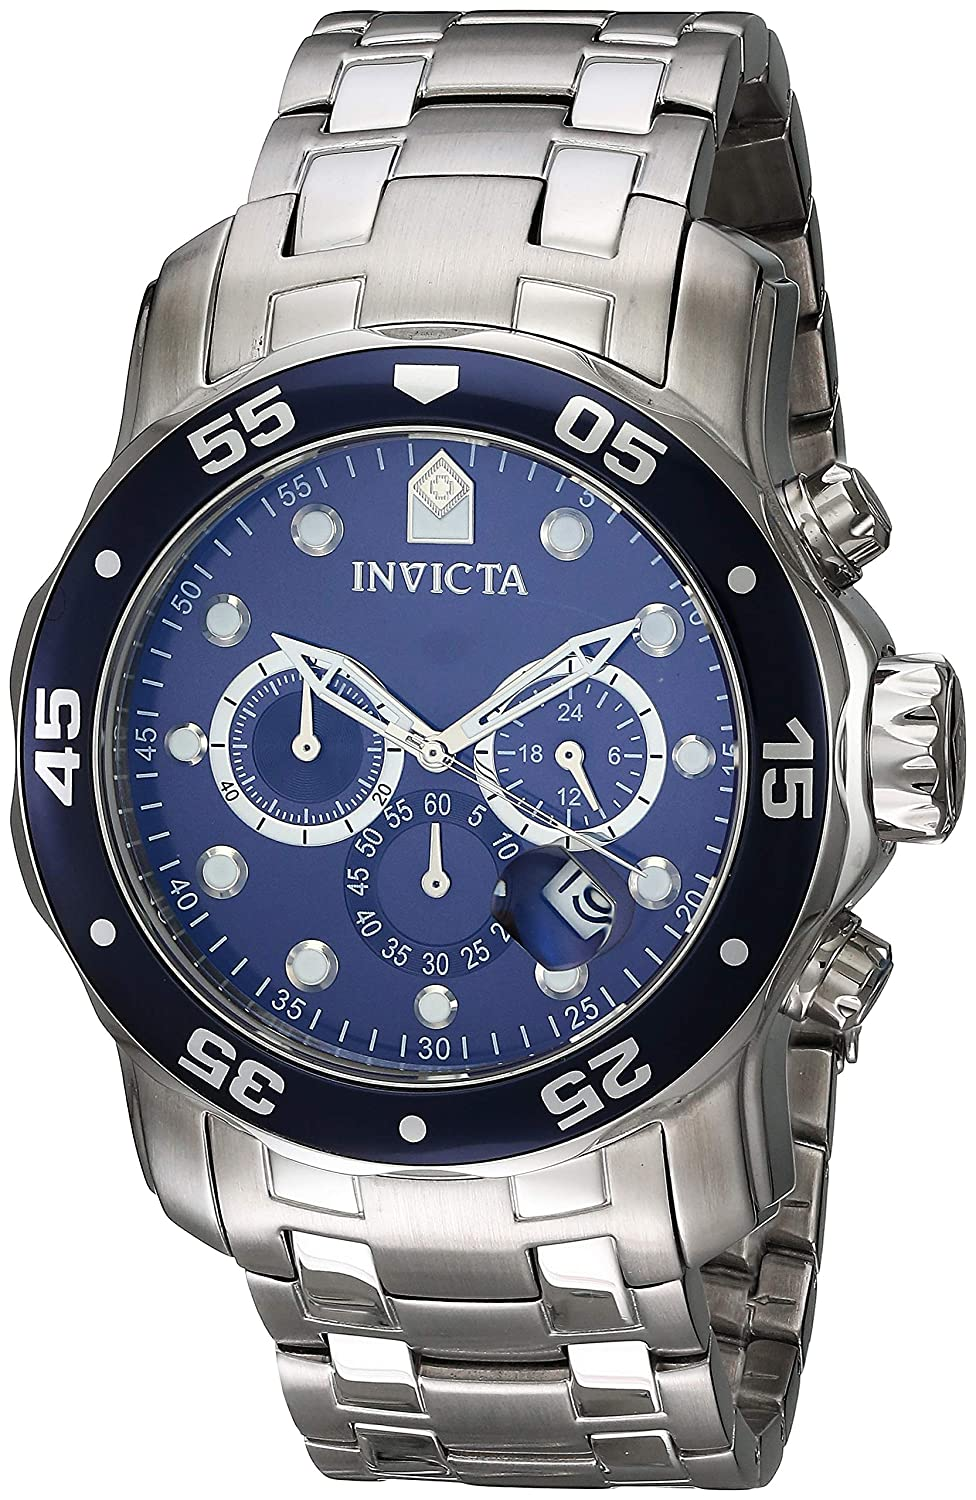 83d08744e6c Amazon.com  Invicta Men s 0070 Pro Diver Collection Analog Chinese Quartz  Chronograh Silver-Tone Blue Stainless Steel Watch  Invicta  Watches